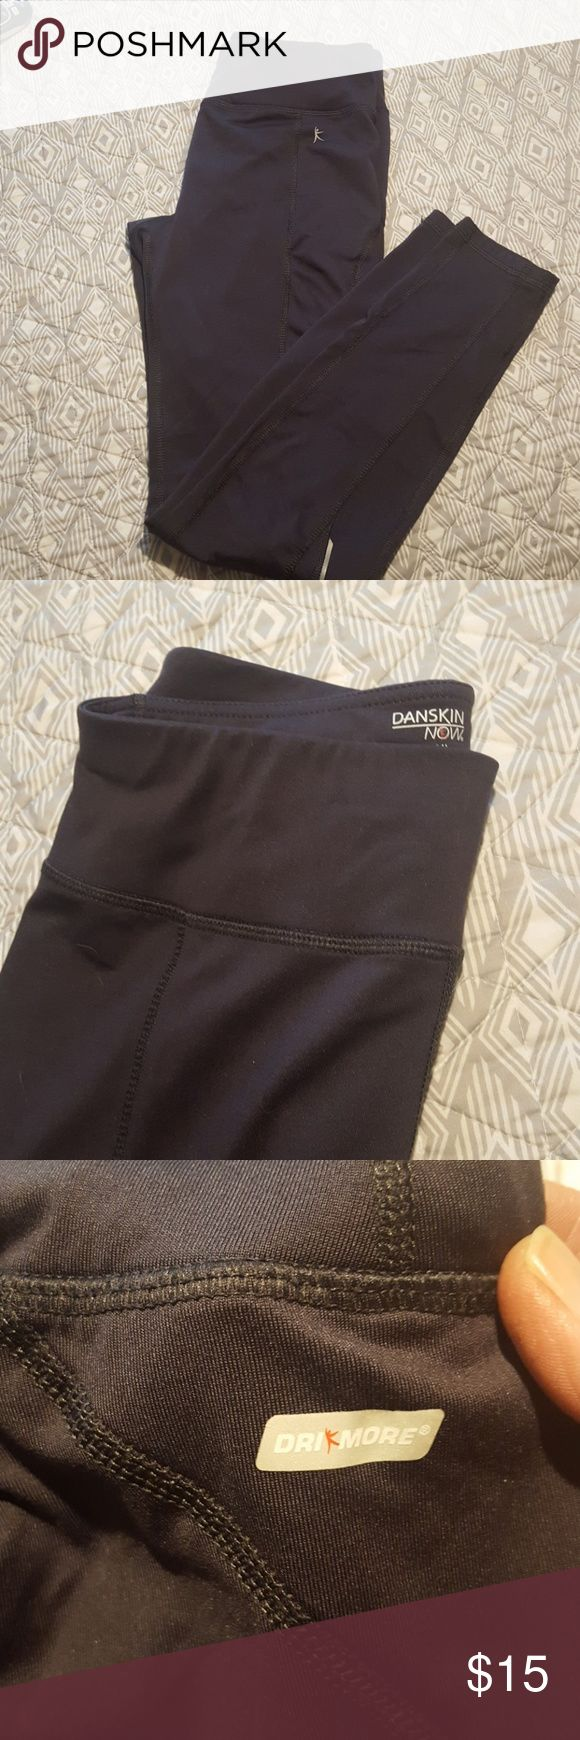 Danskin skinny jogger pants These EUC skinny joggers are so easy to slip on and run to the gym,or lounge with your favorite sweatshirt. They have a hidden pocket on the inside to stash your cash!!! Dark grey kind of shiny look. Danskin Pants Track Pants & Joggers